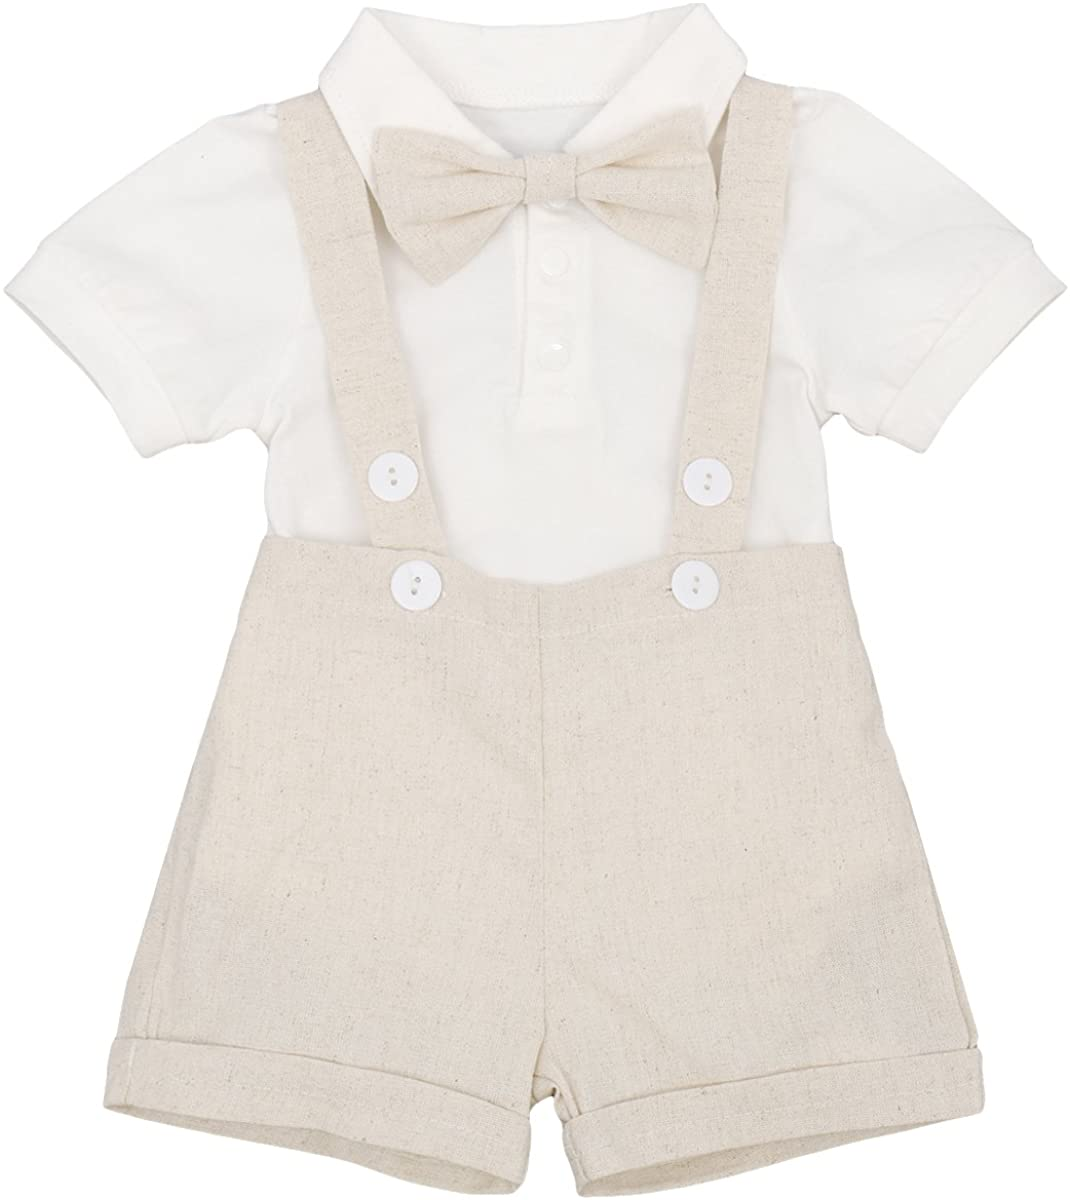 Baby Boy Gentleman Formal Suit Tuxedo Bowtie Romper Suspenders Cake Smash Outfit Wedding Bib Pants Overalls Clothes